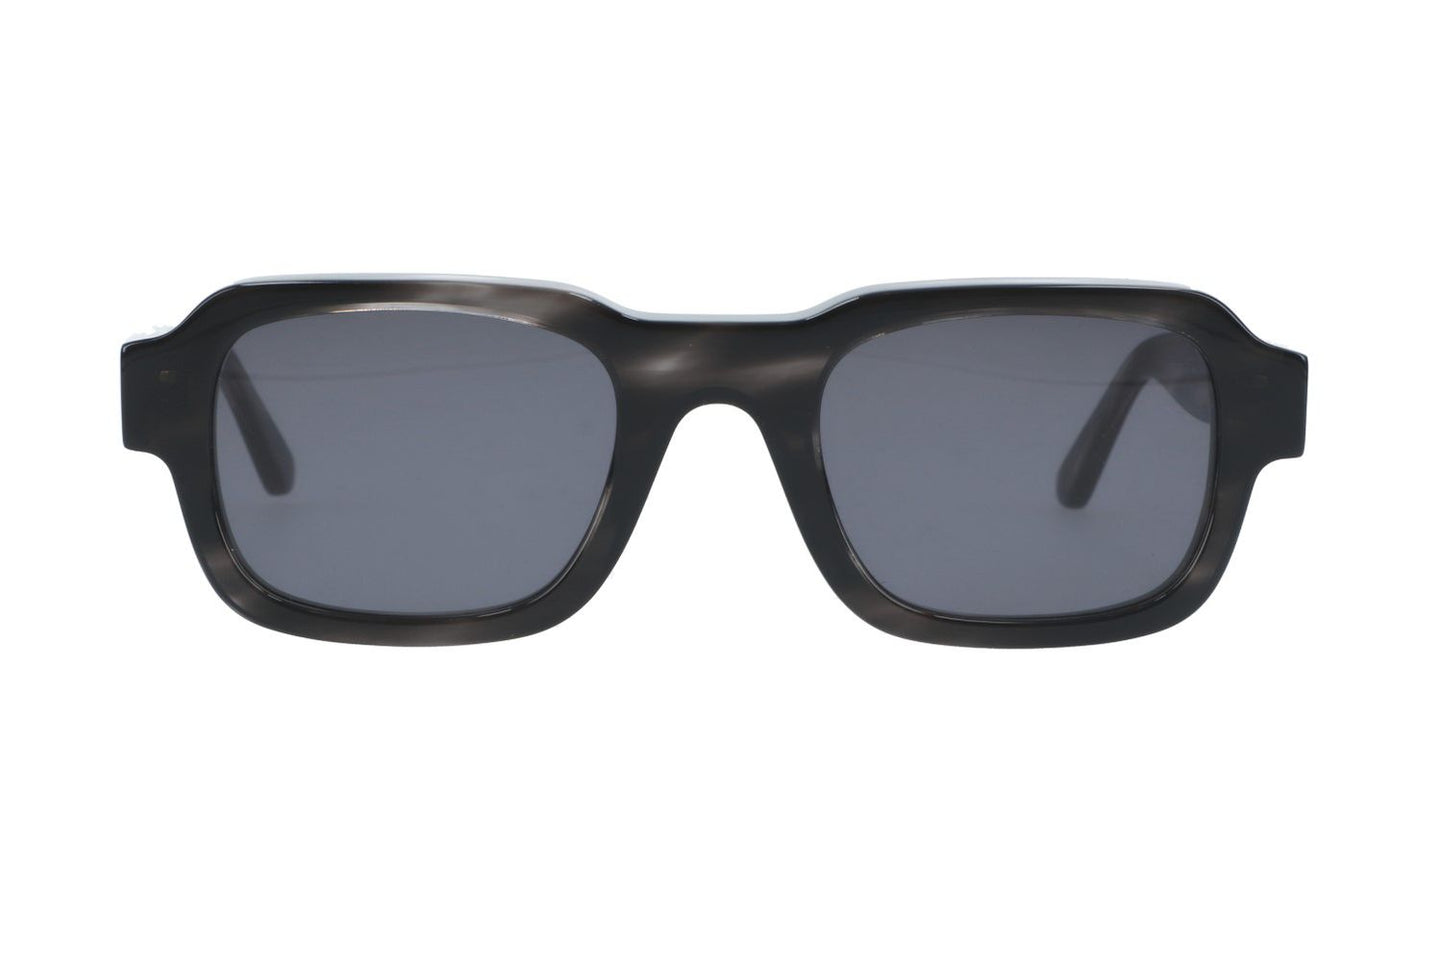 grey_tortoise_frame_with_dark_grey_lenses